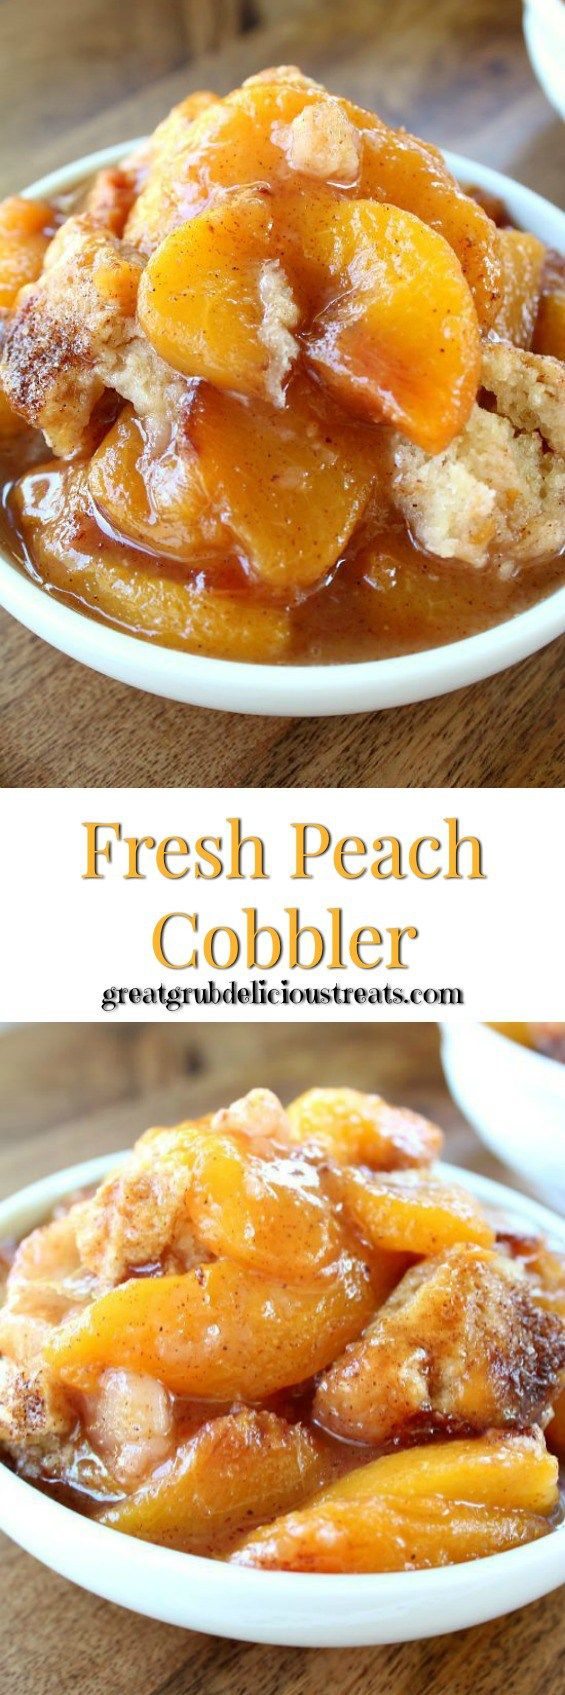 Fresh Peach Cobbler - made 16th october 16,easy and quick to do.